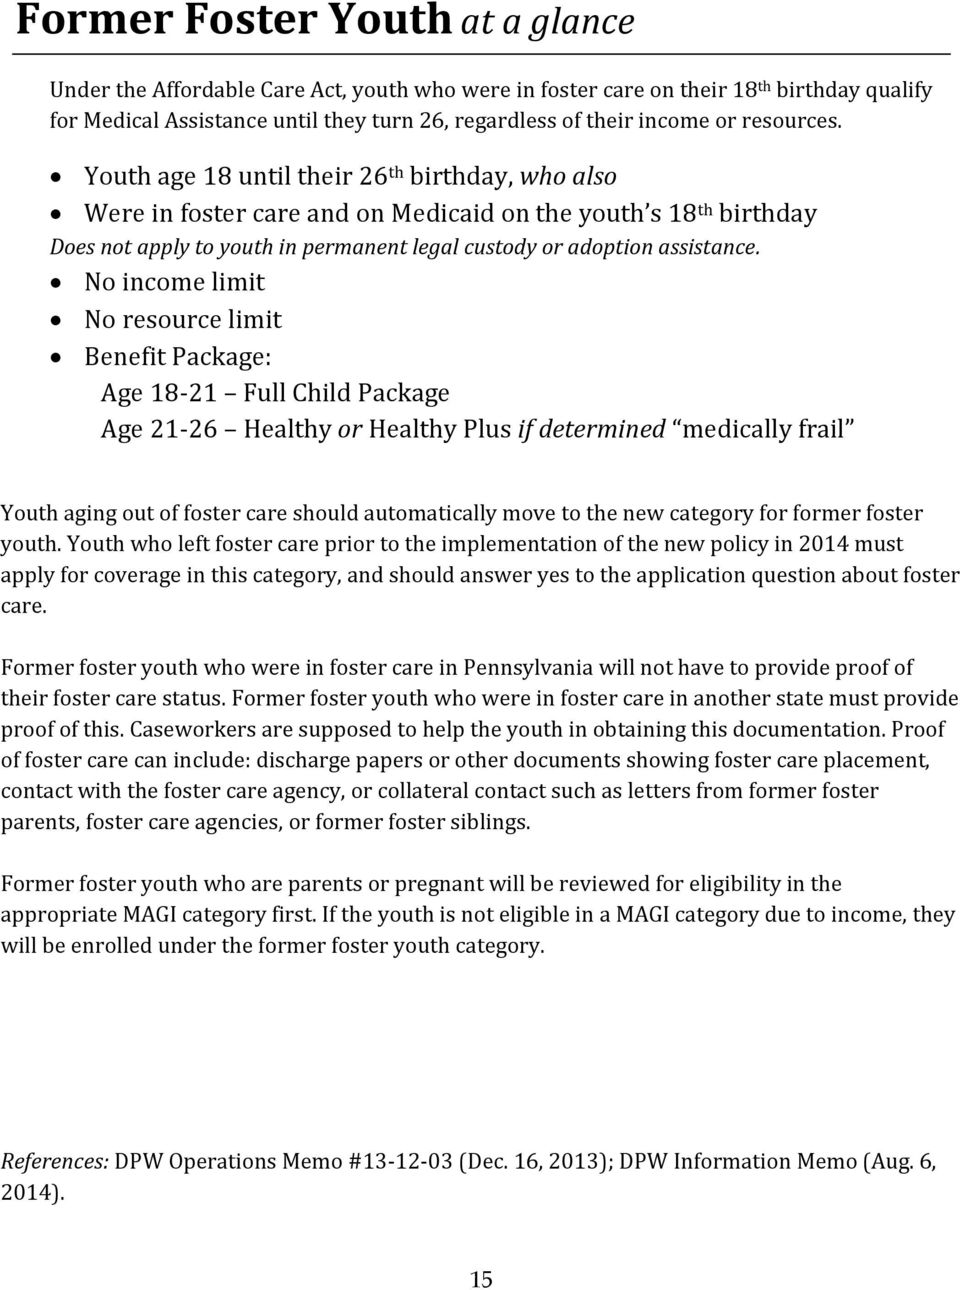 Youth age 18 until their 26 th birthday, who also Were in foster care and on Medicaid on the youth s 18 th birthday Does not apply to youth in permanent legal custody or adoption assistance.